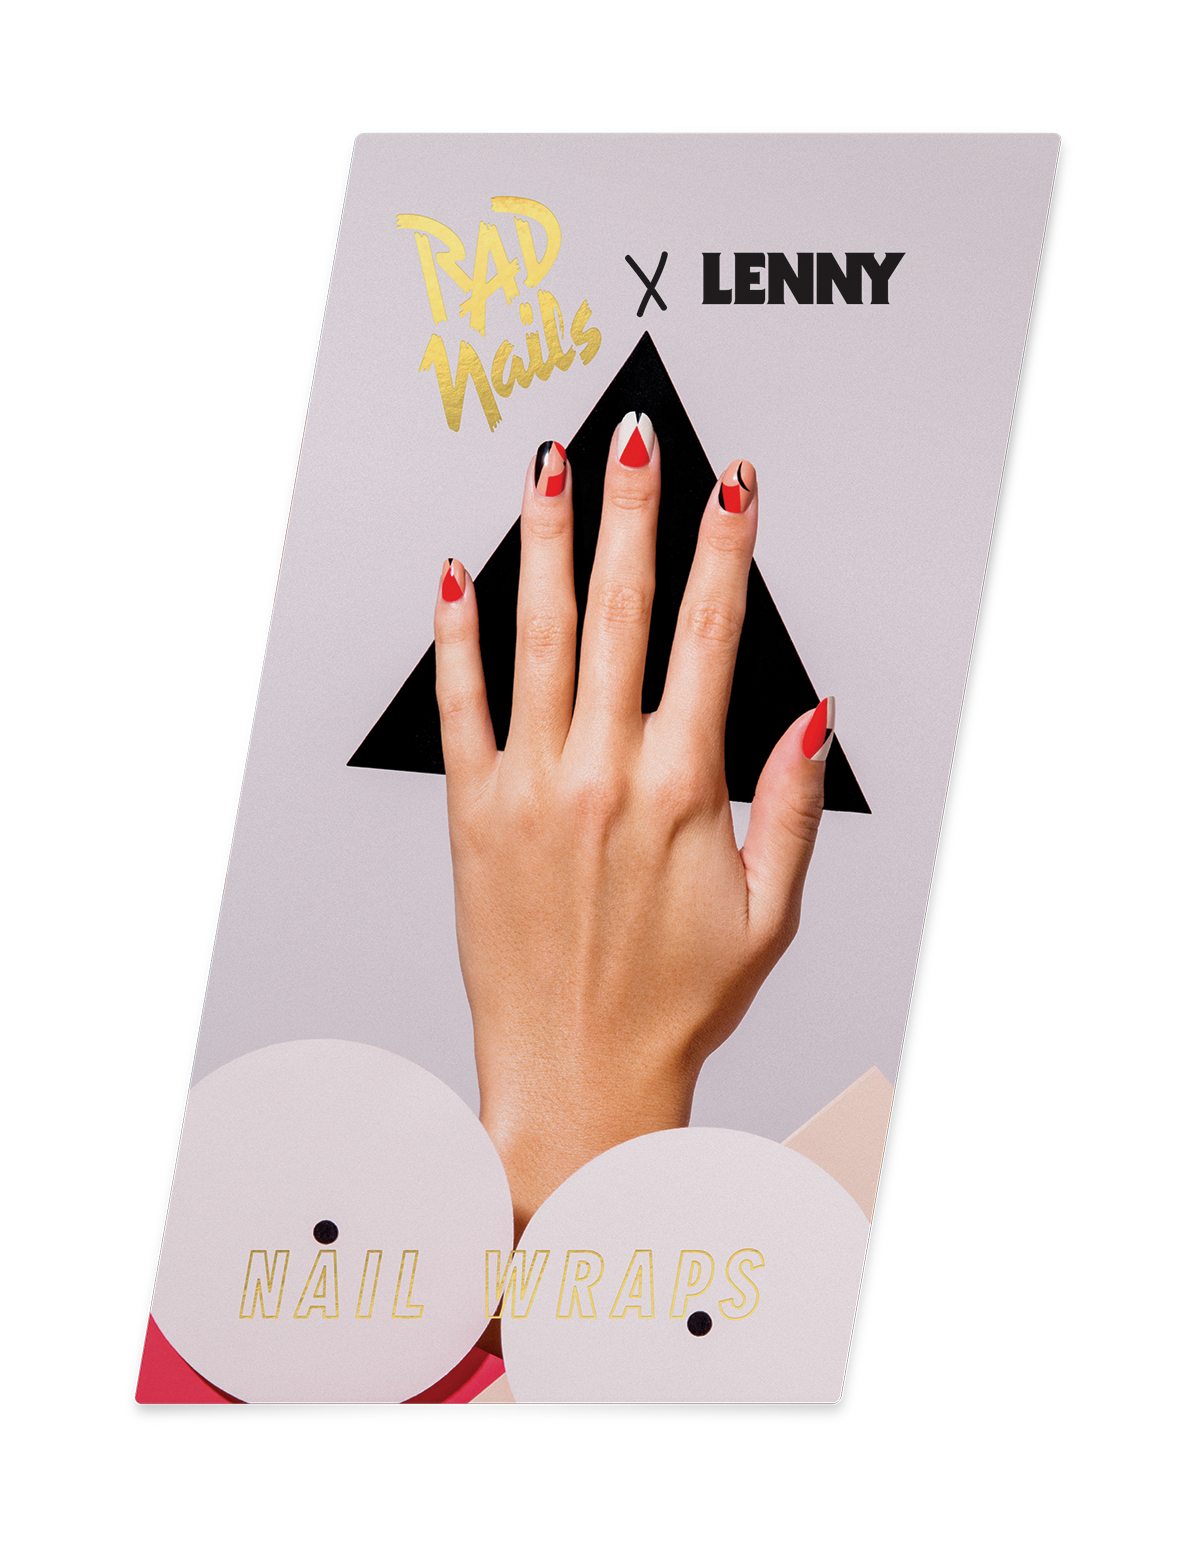 Nudes / Lenny X Rad Nails